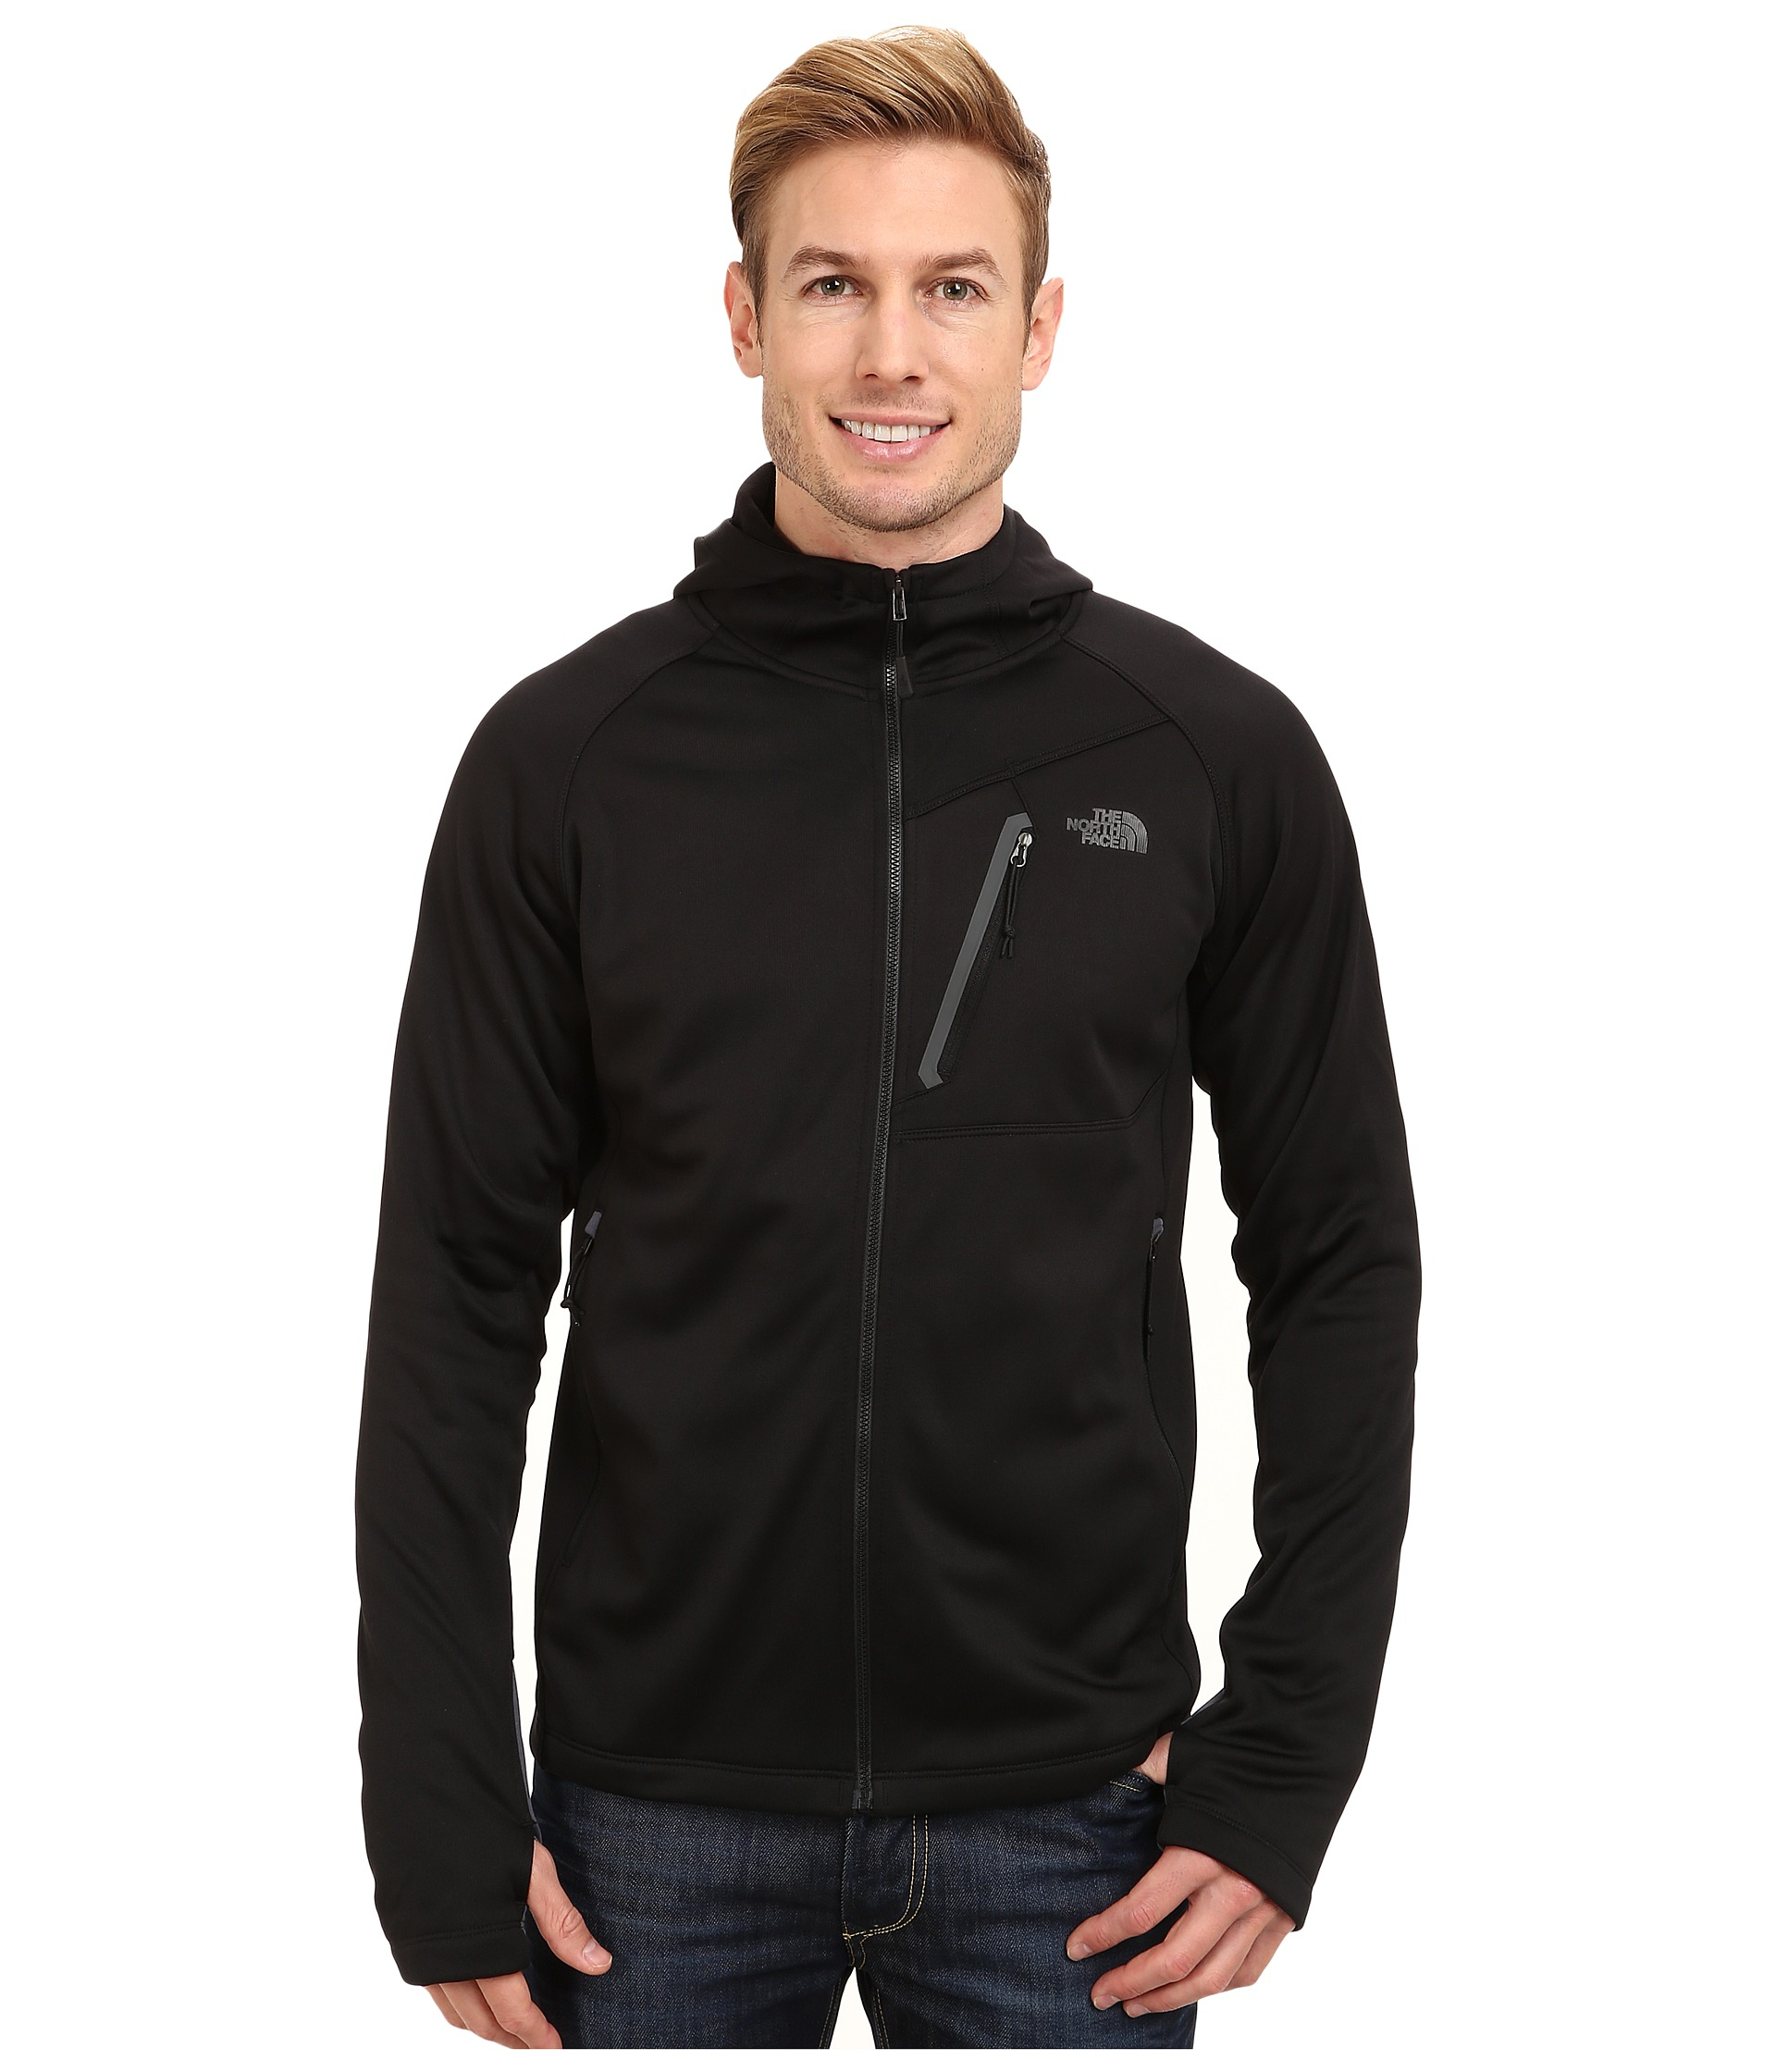 3936fbc0d The North Face Black Canyonlands Hoodie Full Zip for men